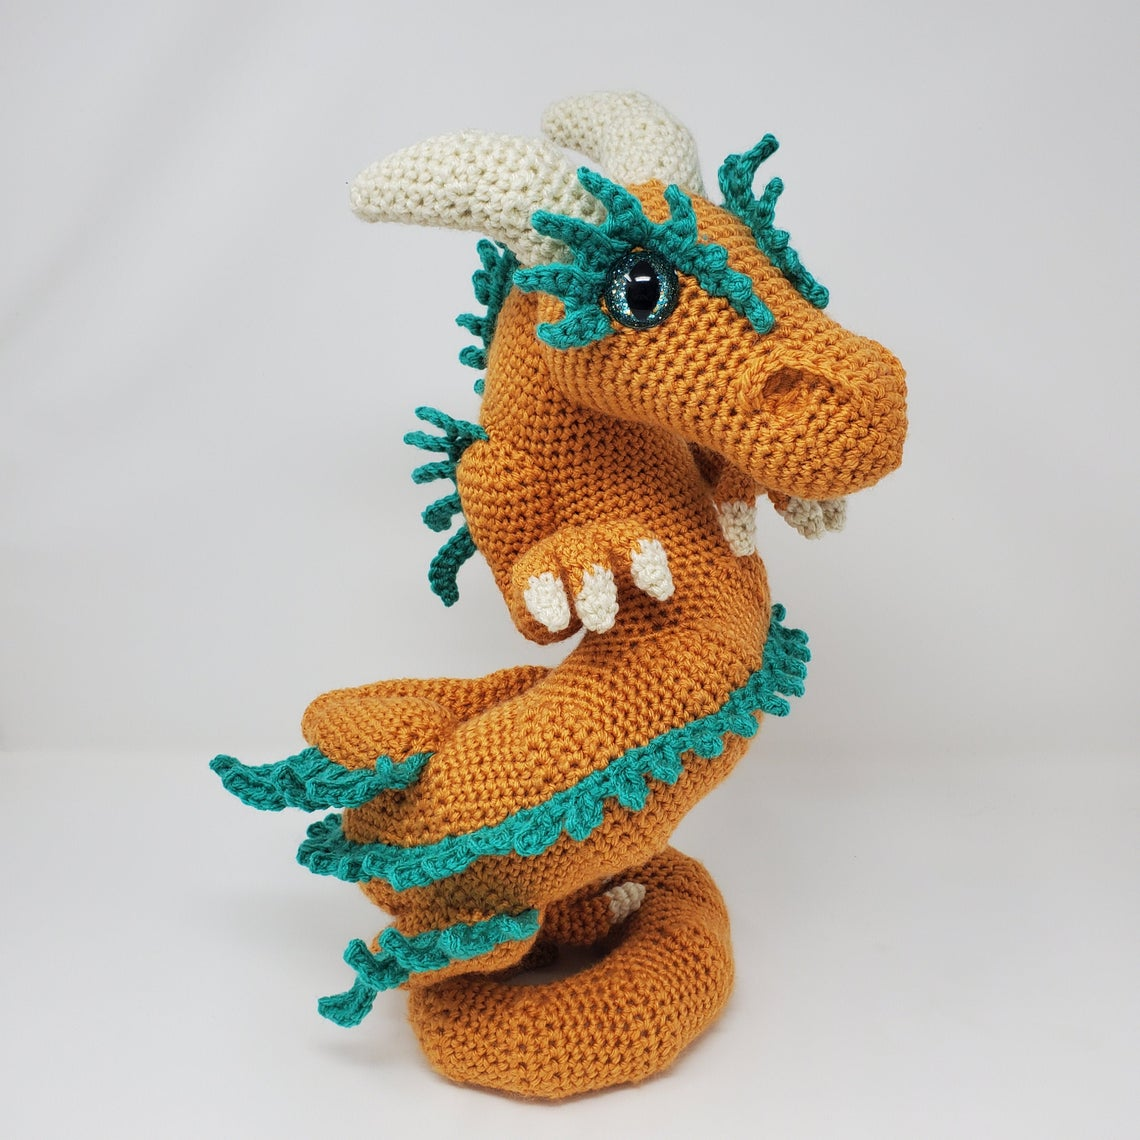 Crochet A Celestial Dragon Designed By Kati Brown Of Hooked By Kati ... This Is The Very Definition Of Unique!